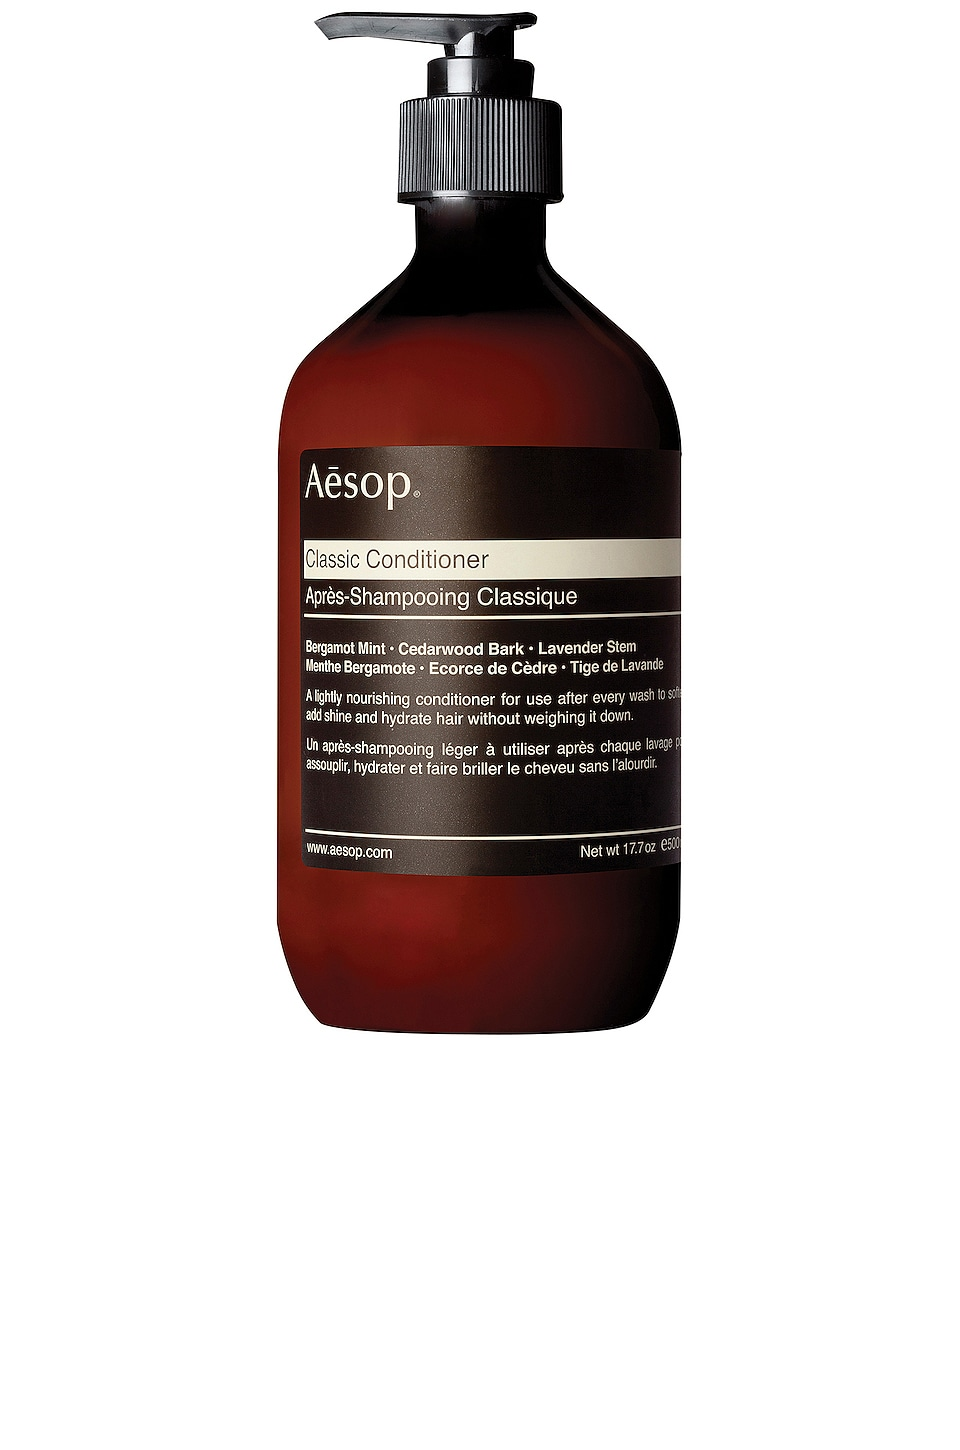 Aesop Classic Conditioner in All